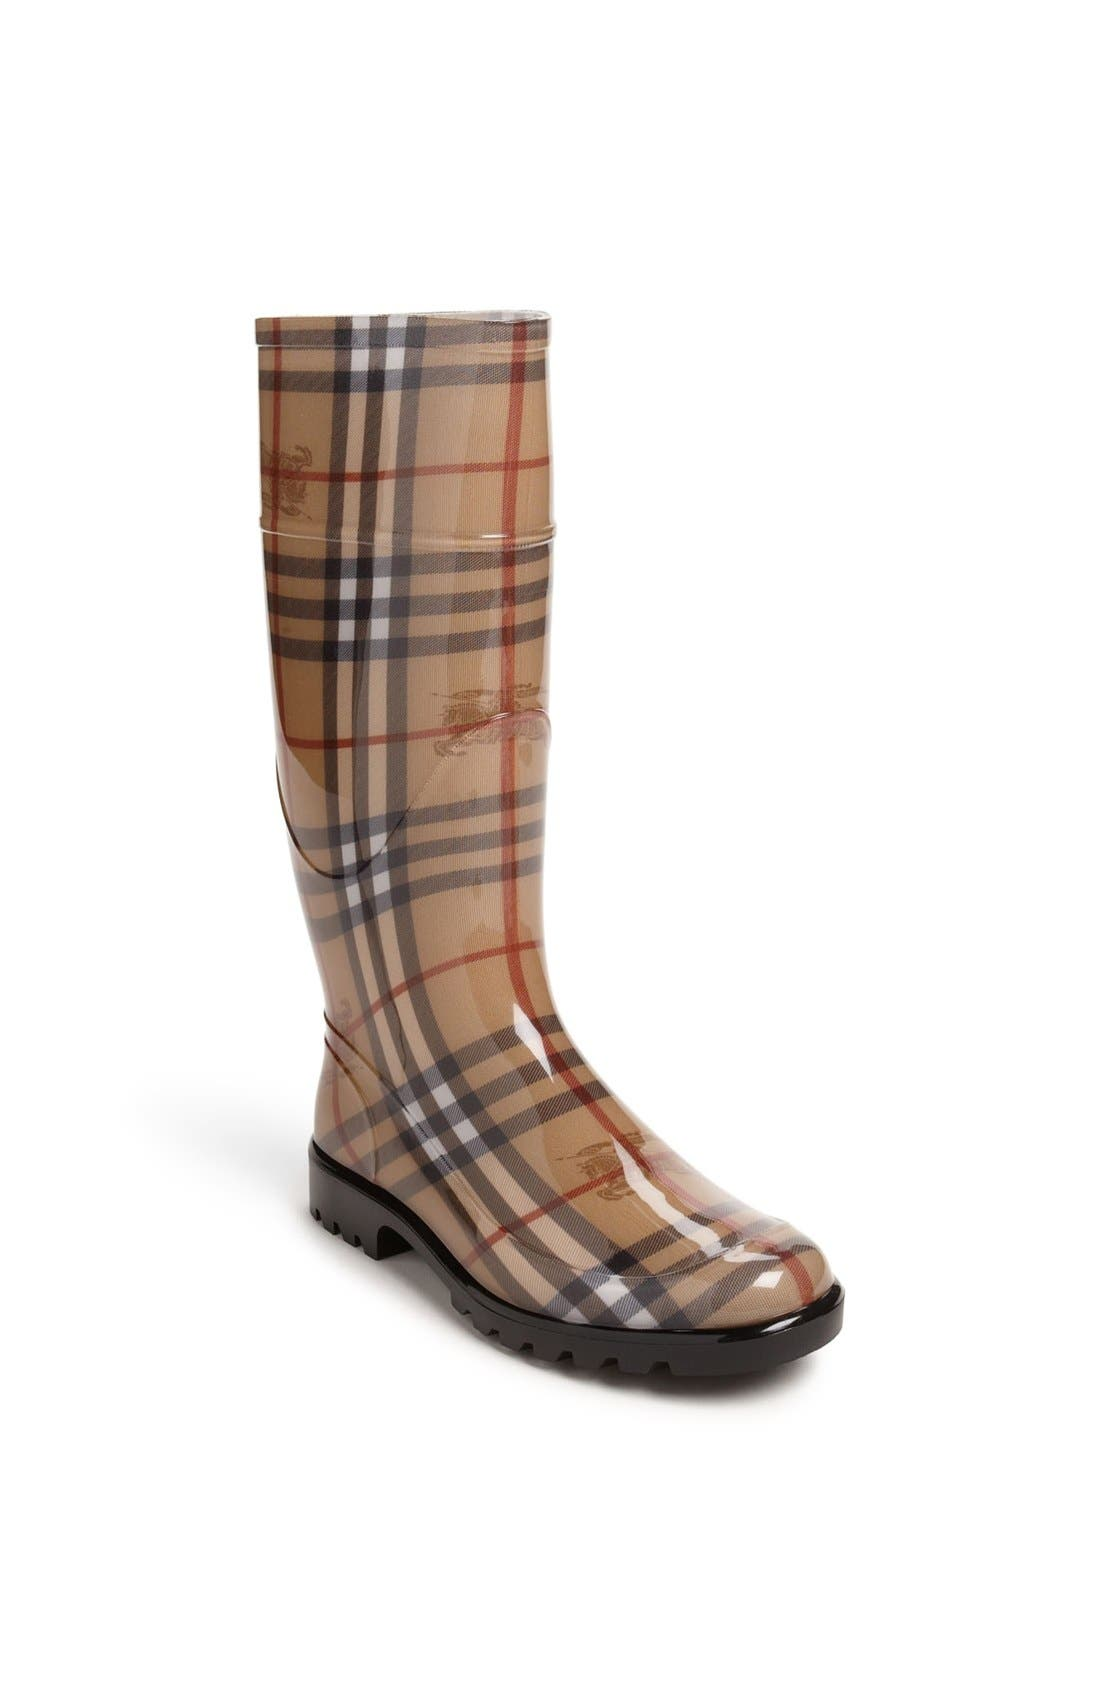 Alternate Image 1 Selected - Burberry Tall Rain Boot (Women)